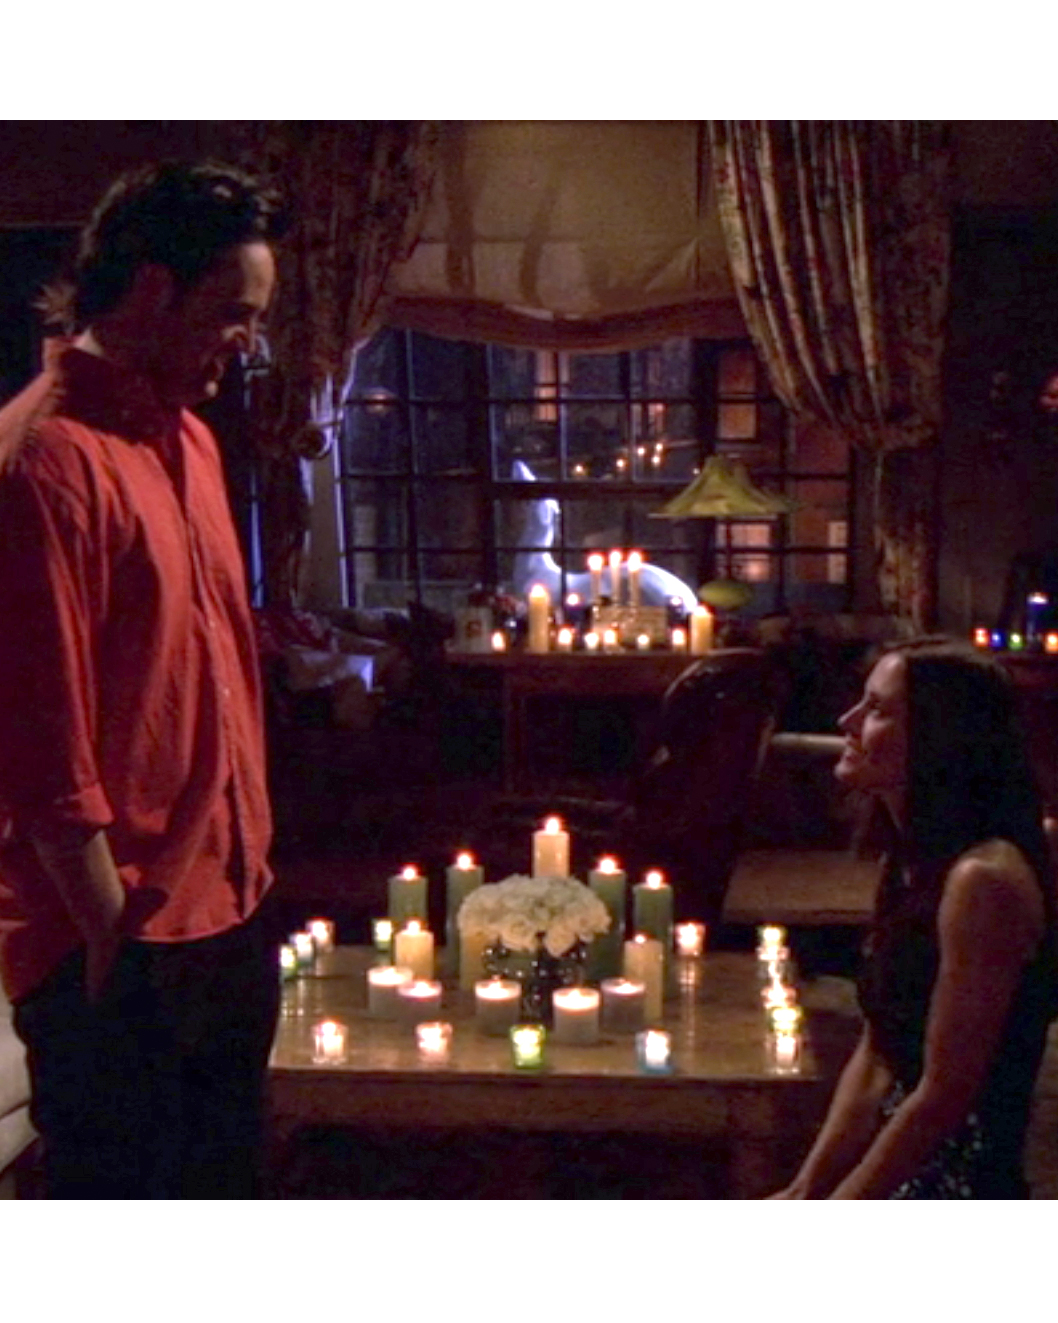 tv-proposal-friends-chandler-monica-1115.jpg